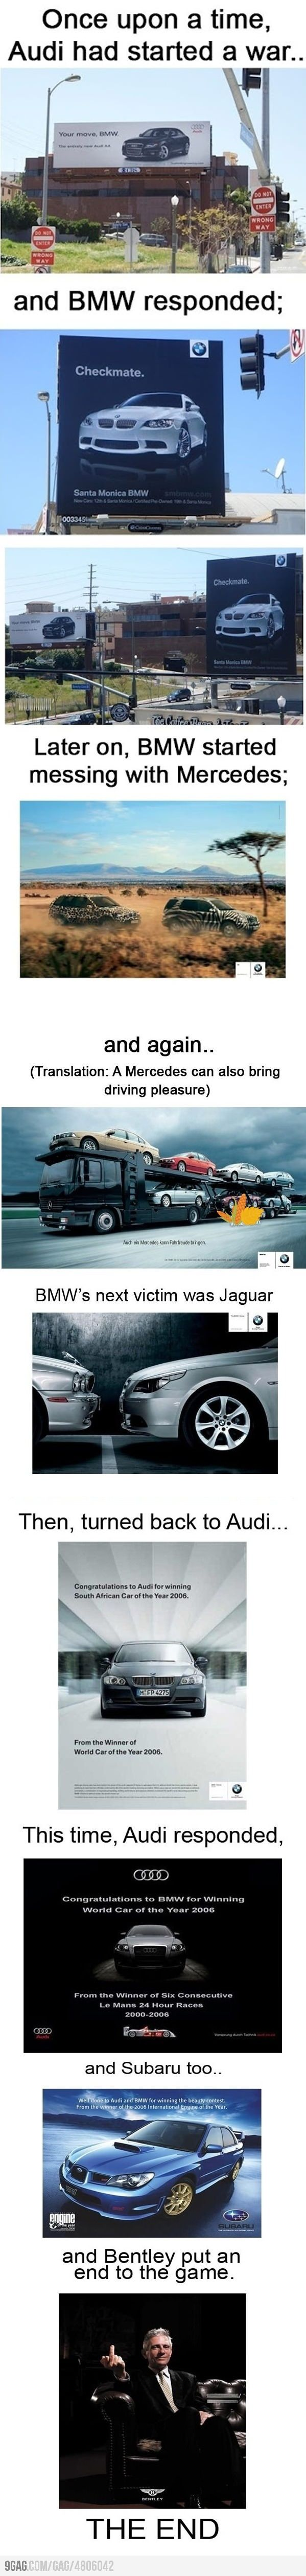 Advertising Wars: Audi vs BMW